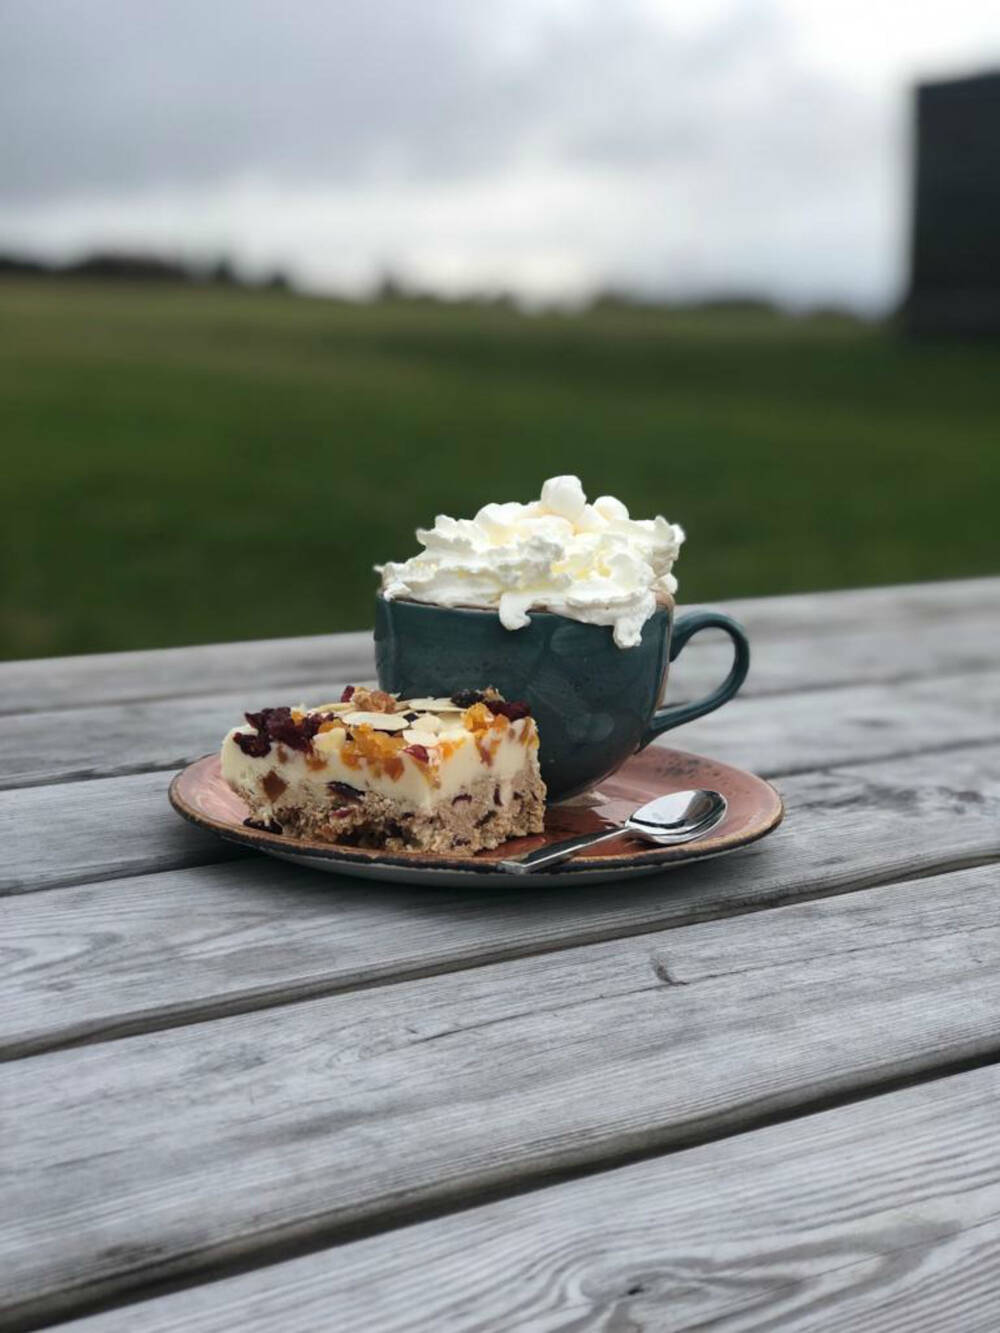 Hot chocolate and cake at Culloden café